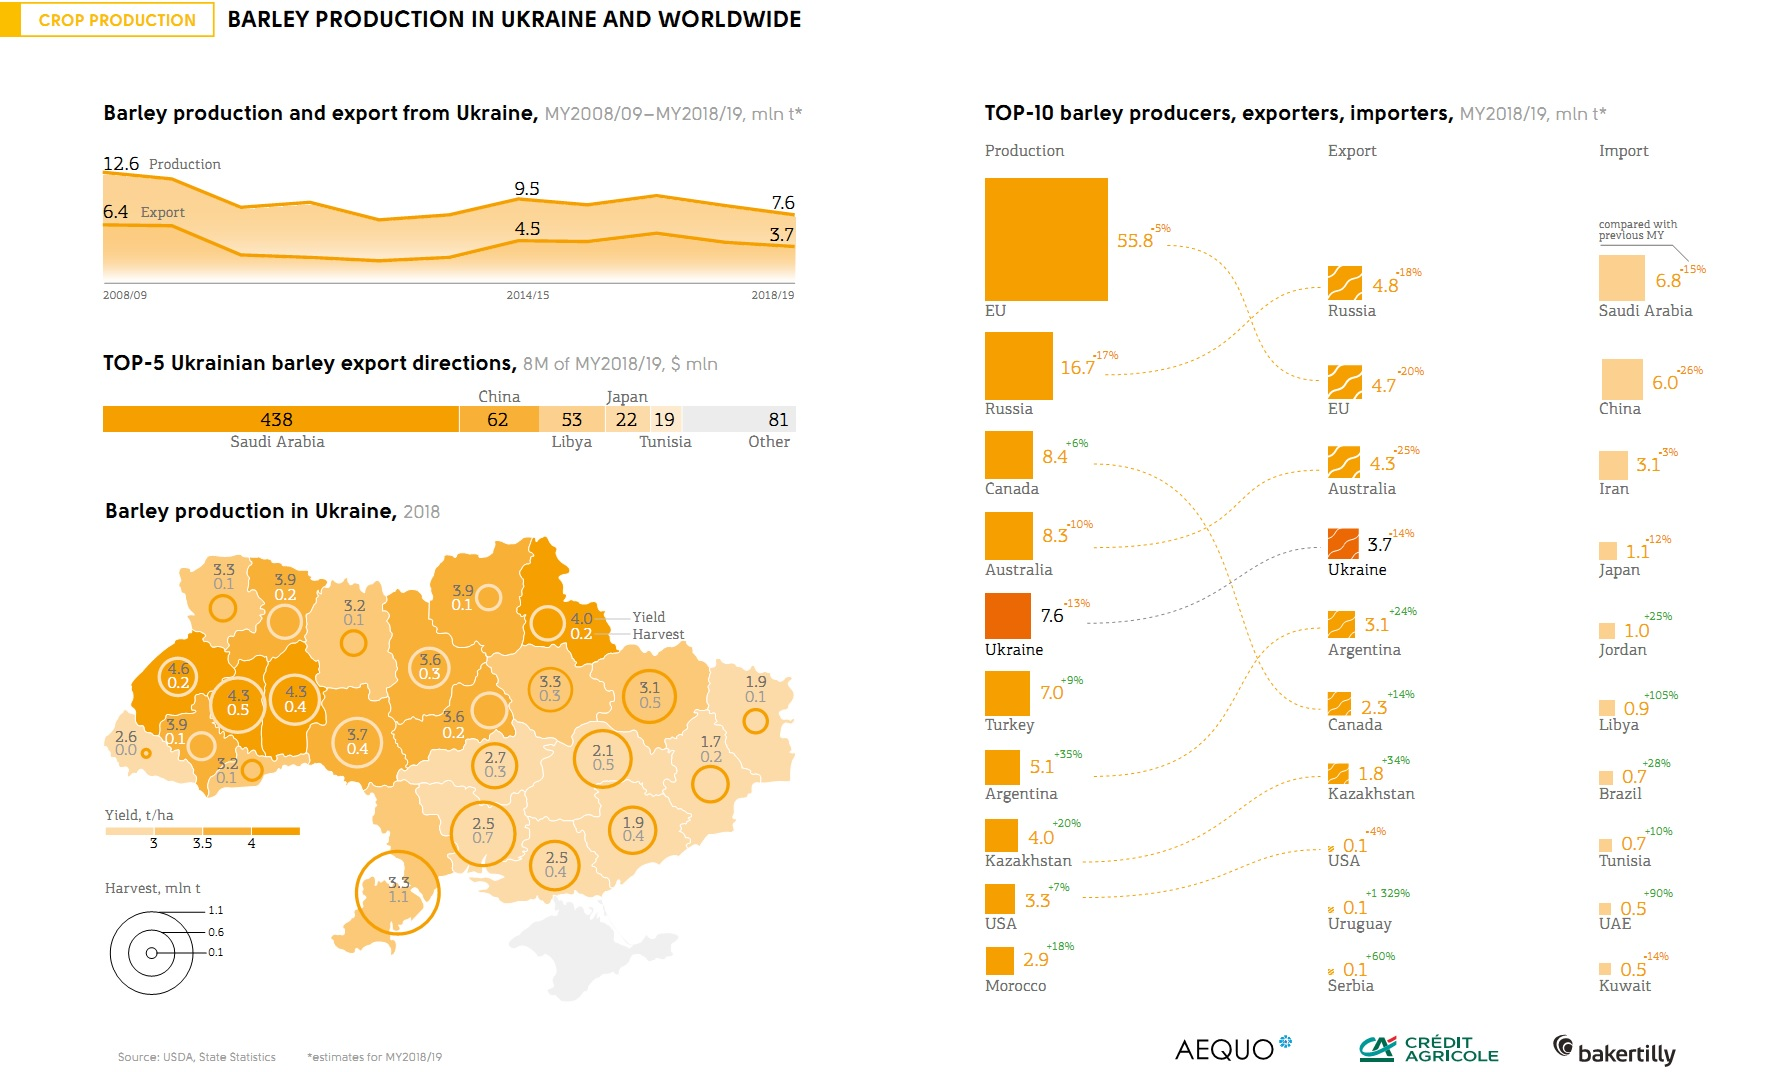 Barley production in Ukraine and worldwide (click for full resolution)